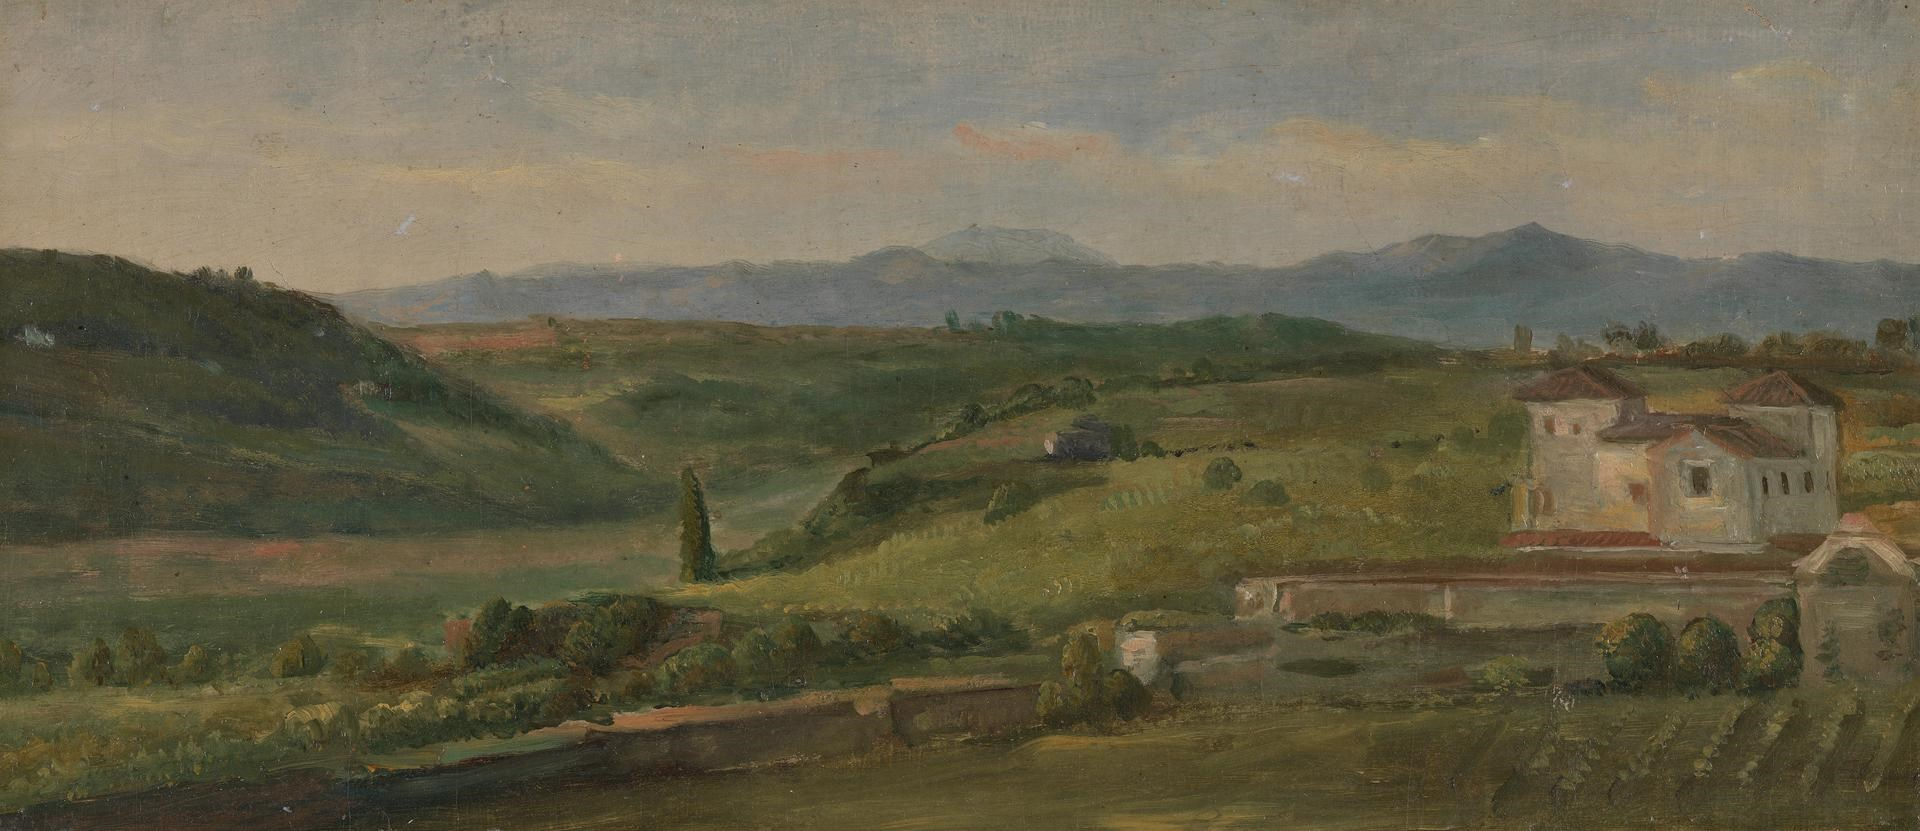 Panoramic Landscape with a Farmhouse by George Frederic Watts